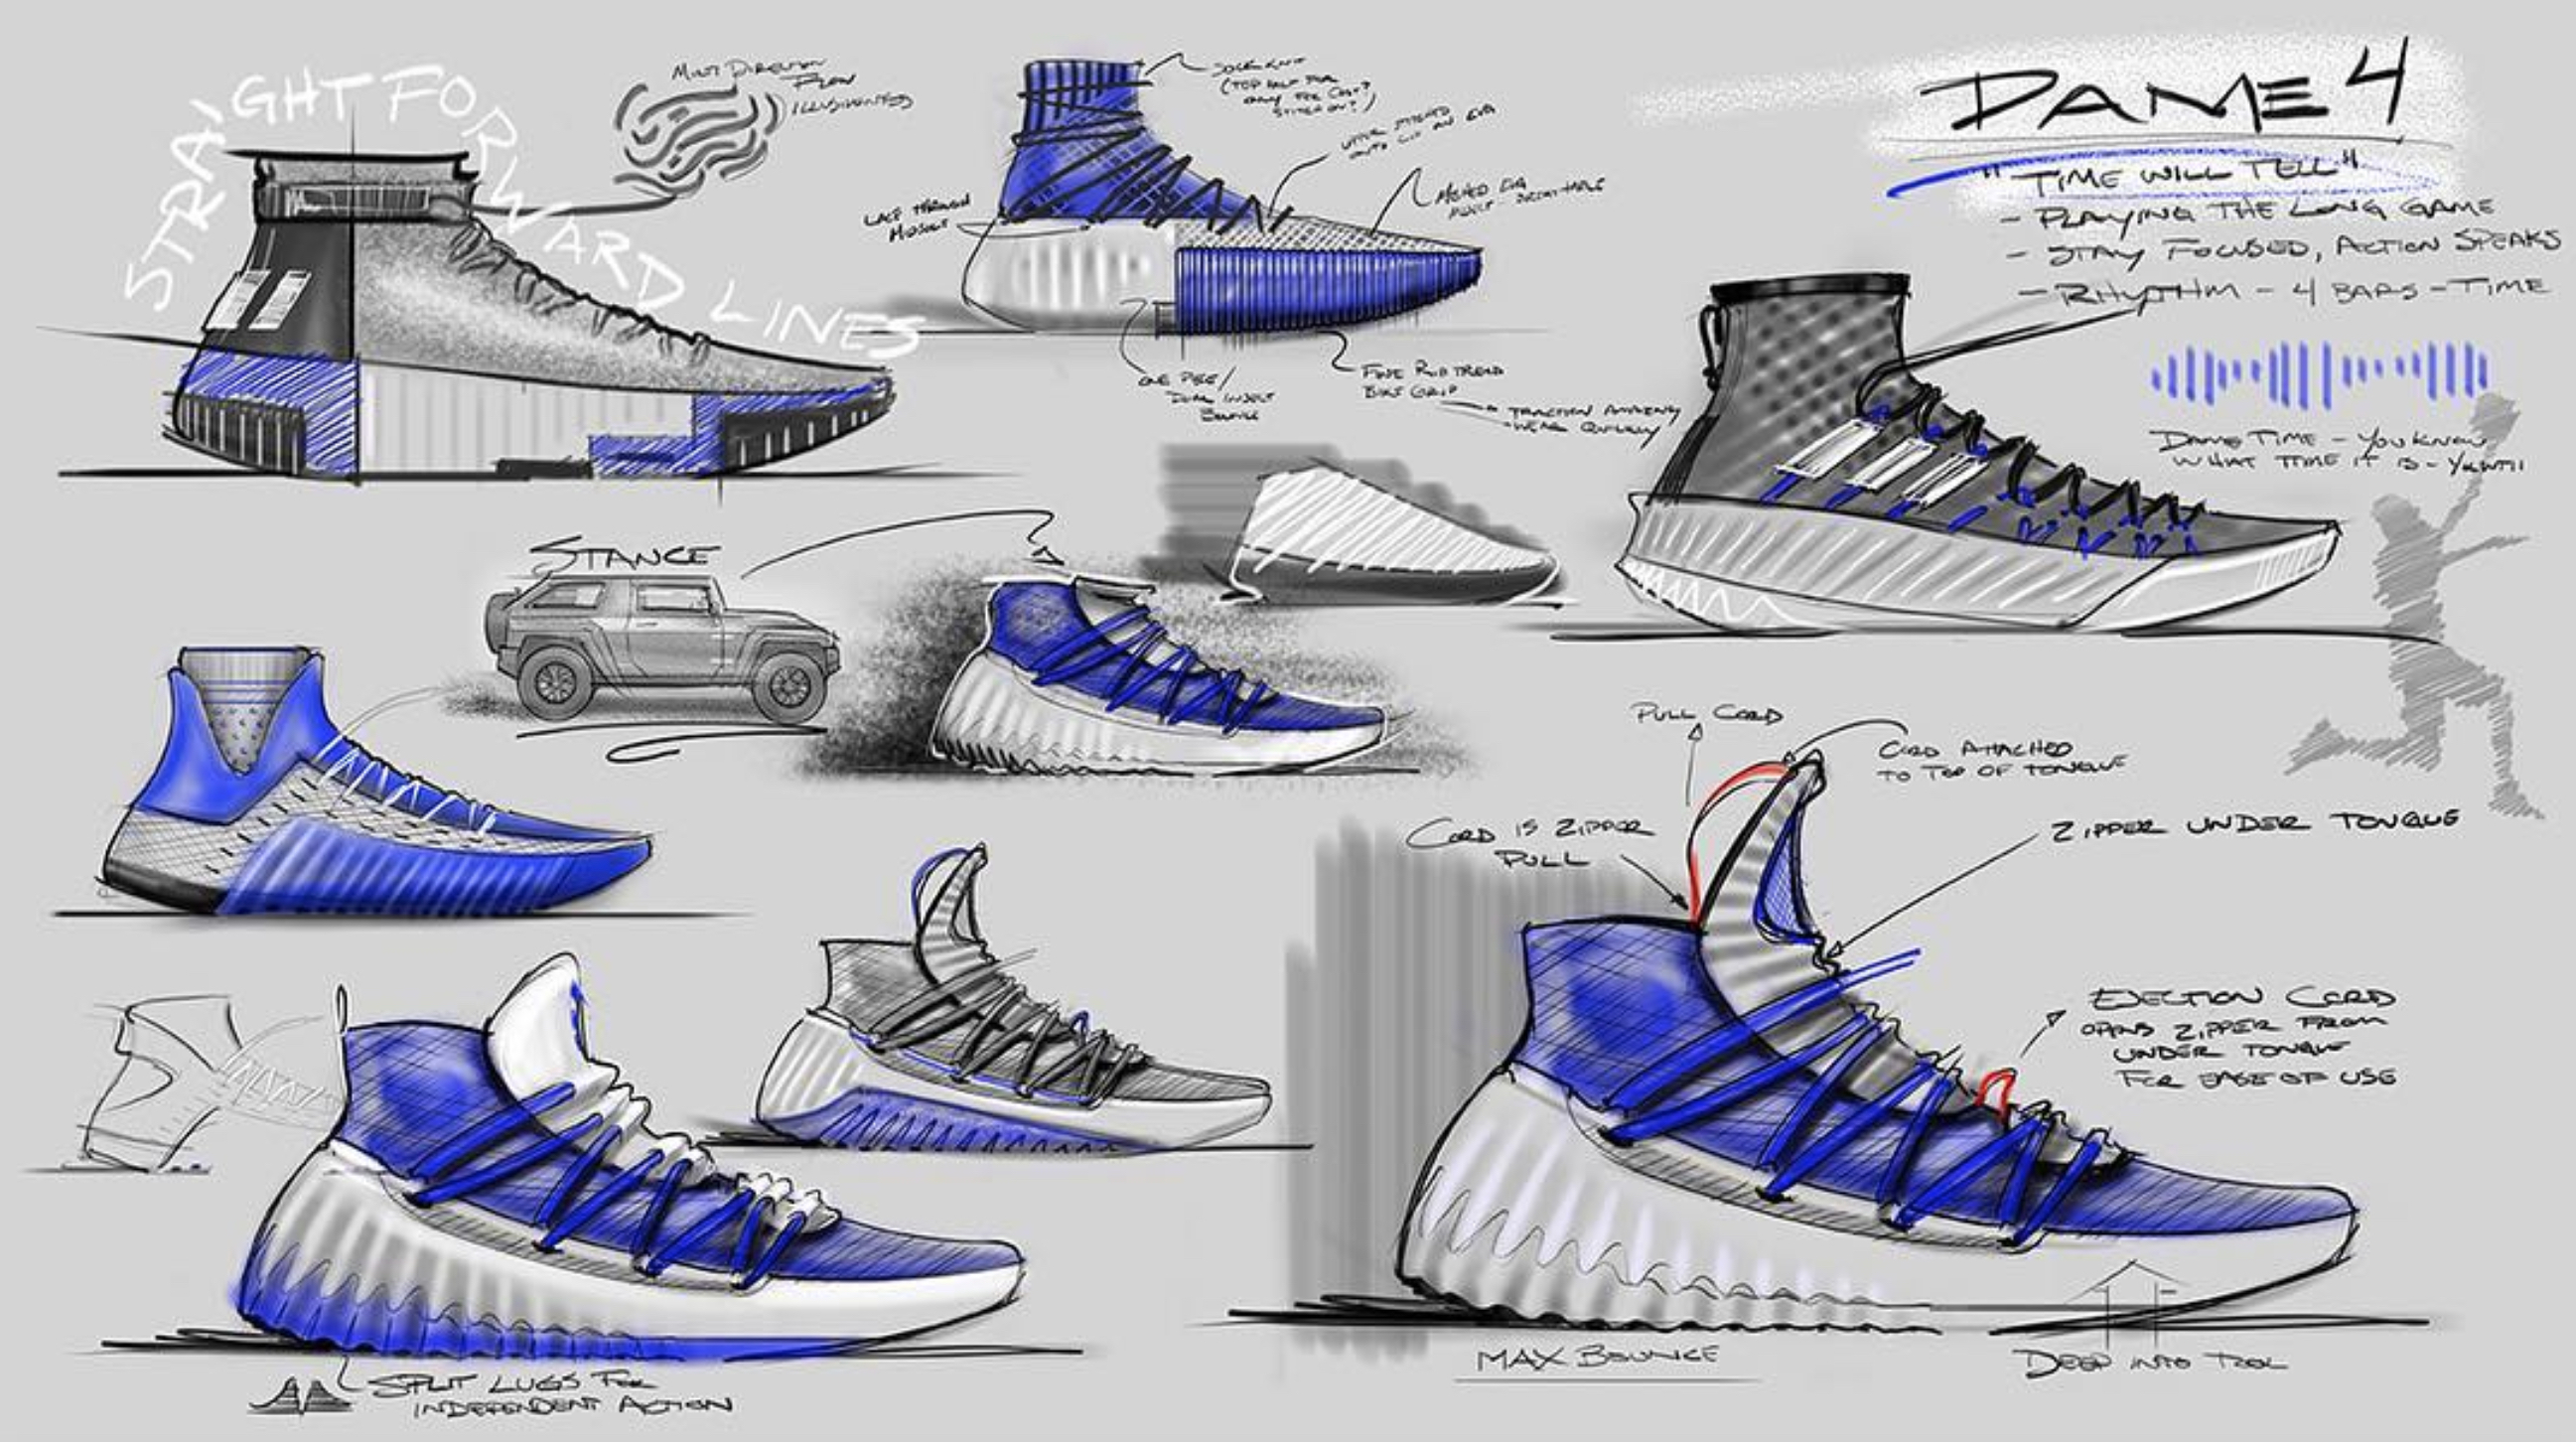 super popular 6e46b 6bcc8 Dame 4 Designer Shares Sketches and Possible Upcoming Colorw